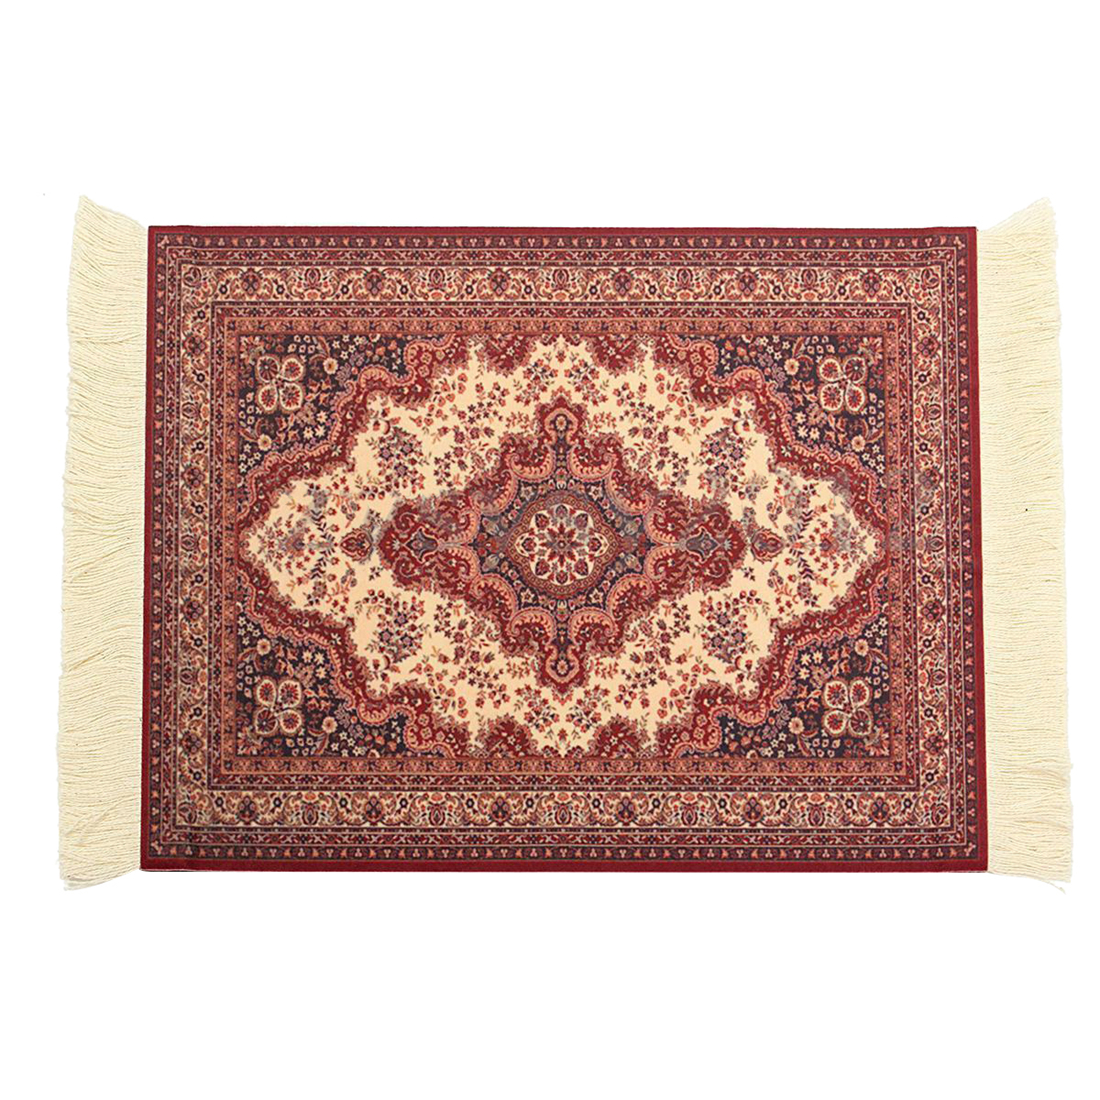 28x18cm Persian Rug Mat Mousepad Retro Style Carpet Pattern Mouse Pad Red